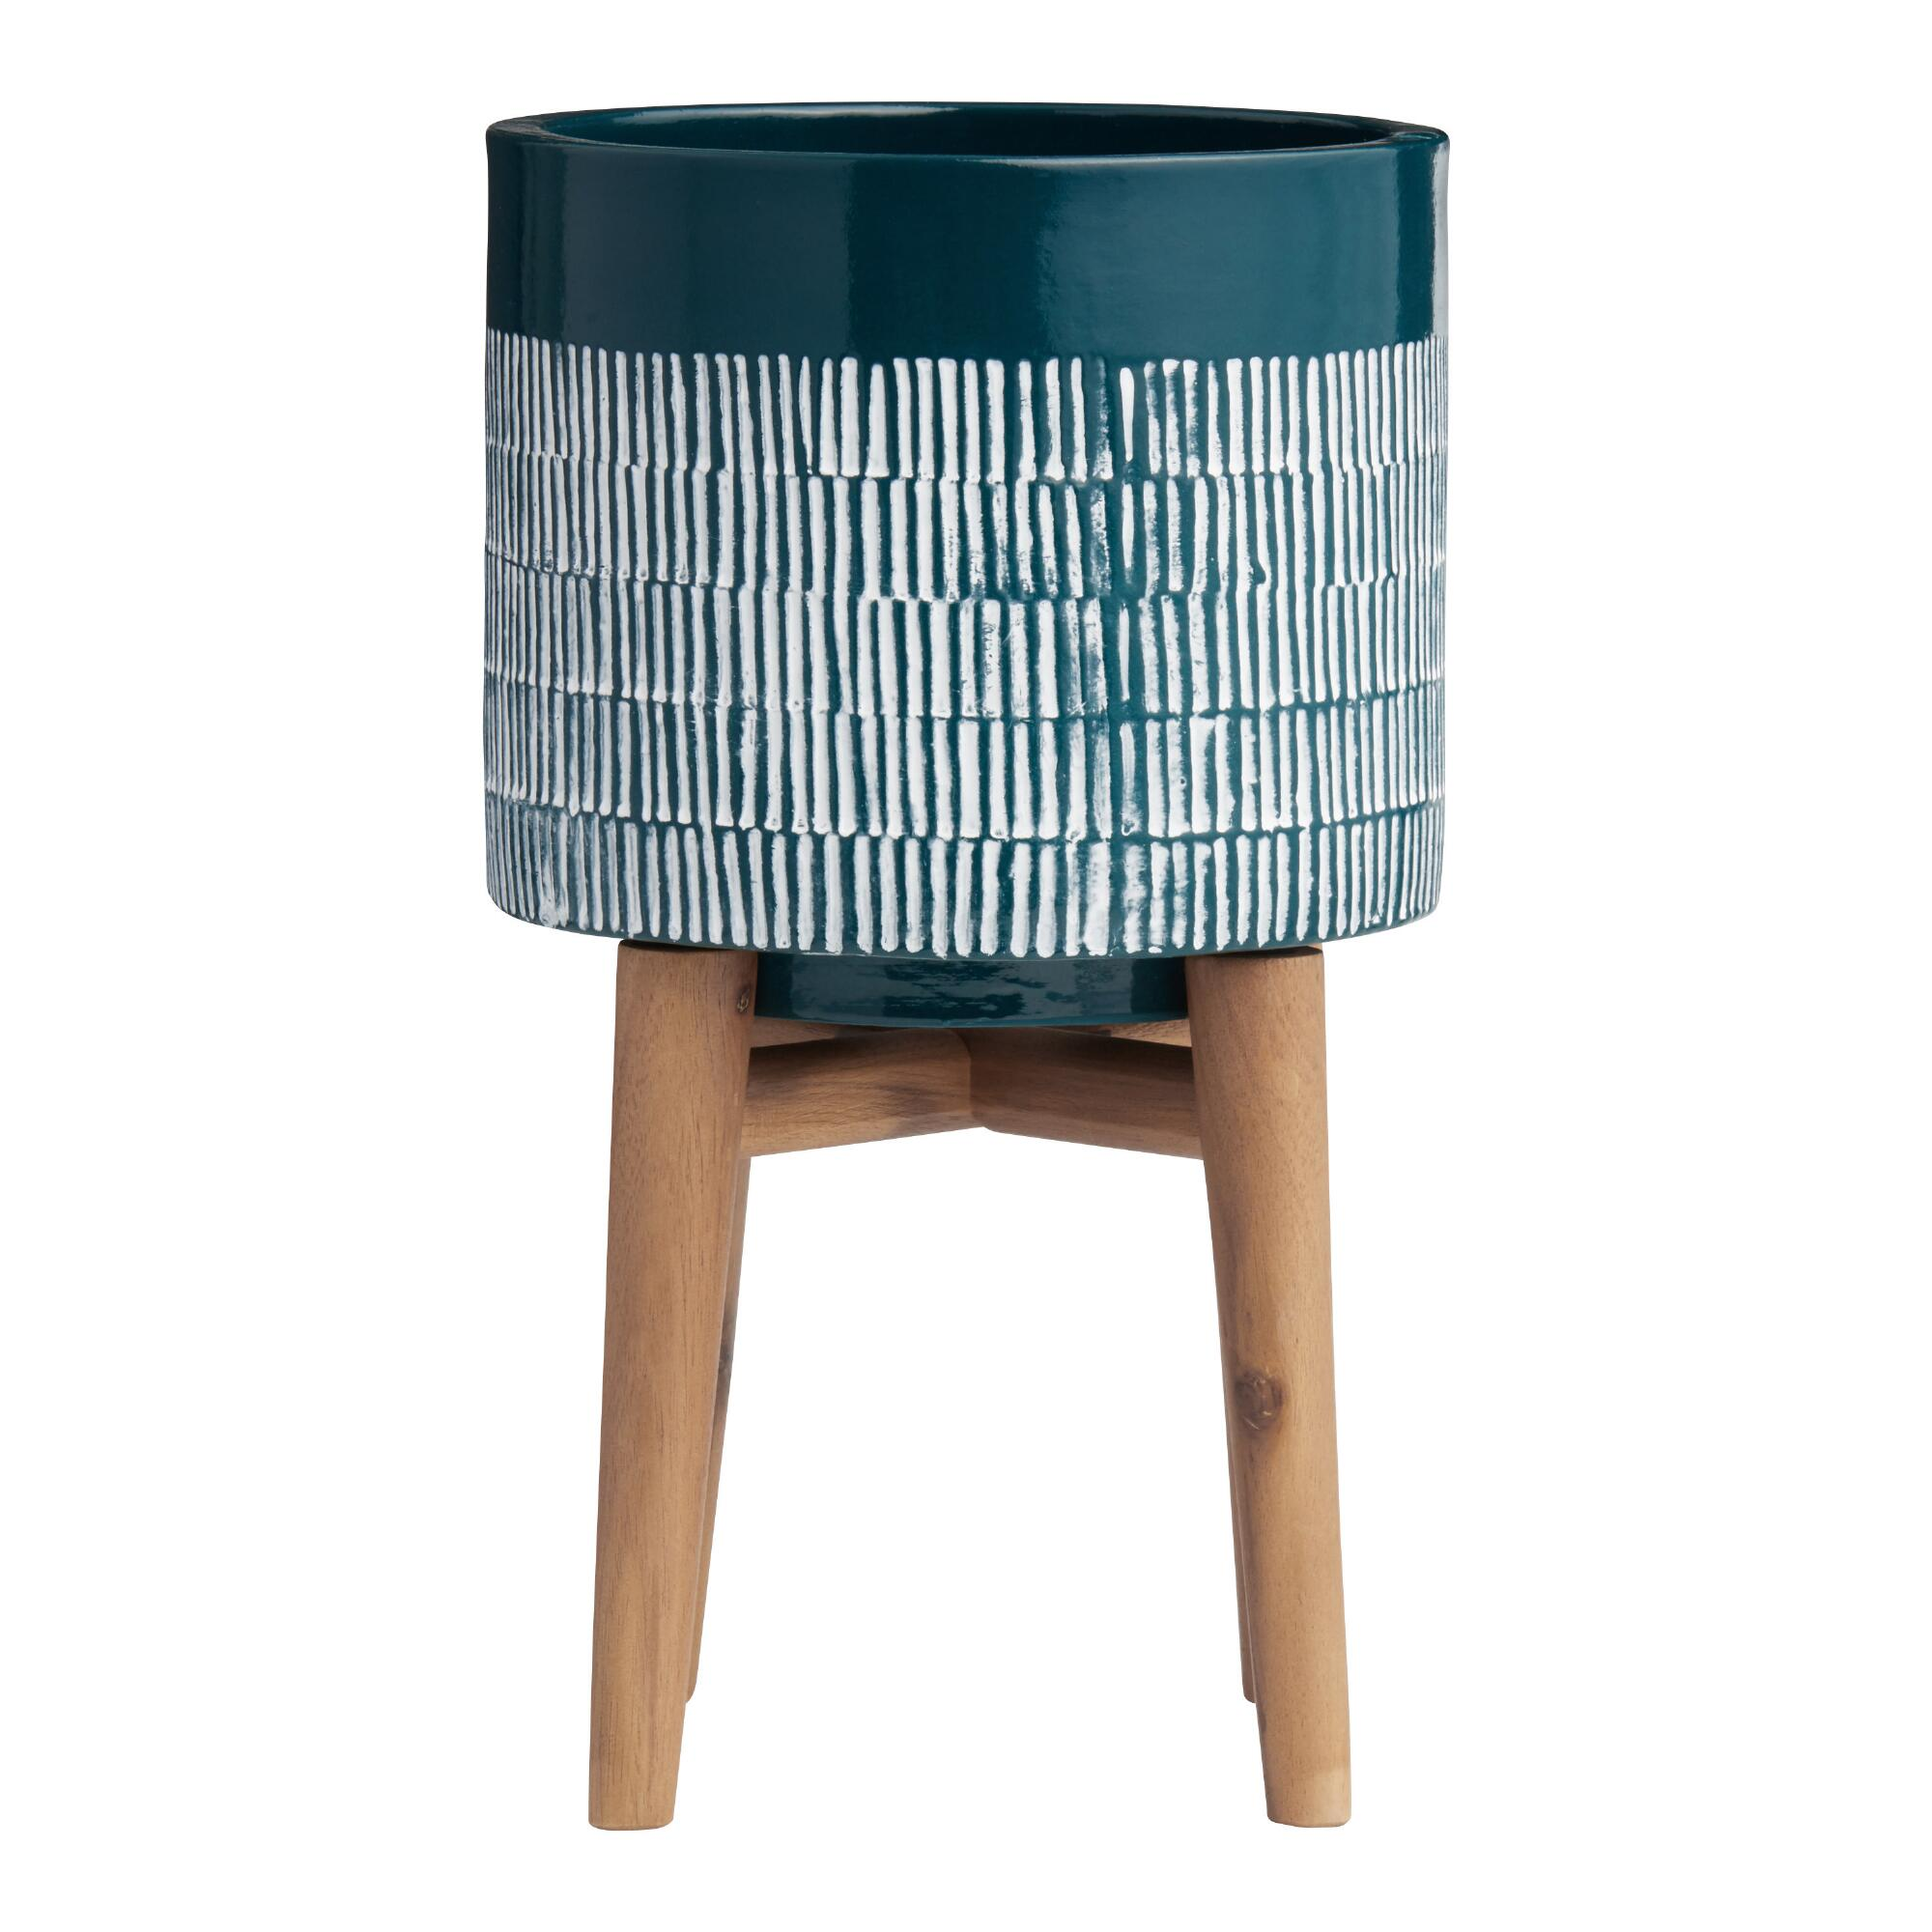 Dark Turquoise Ceramic Planter with Wood Stand: Blue by World Market